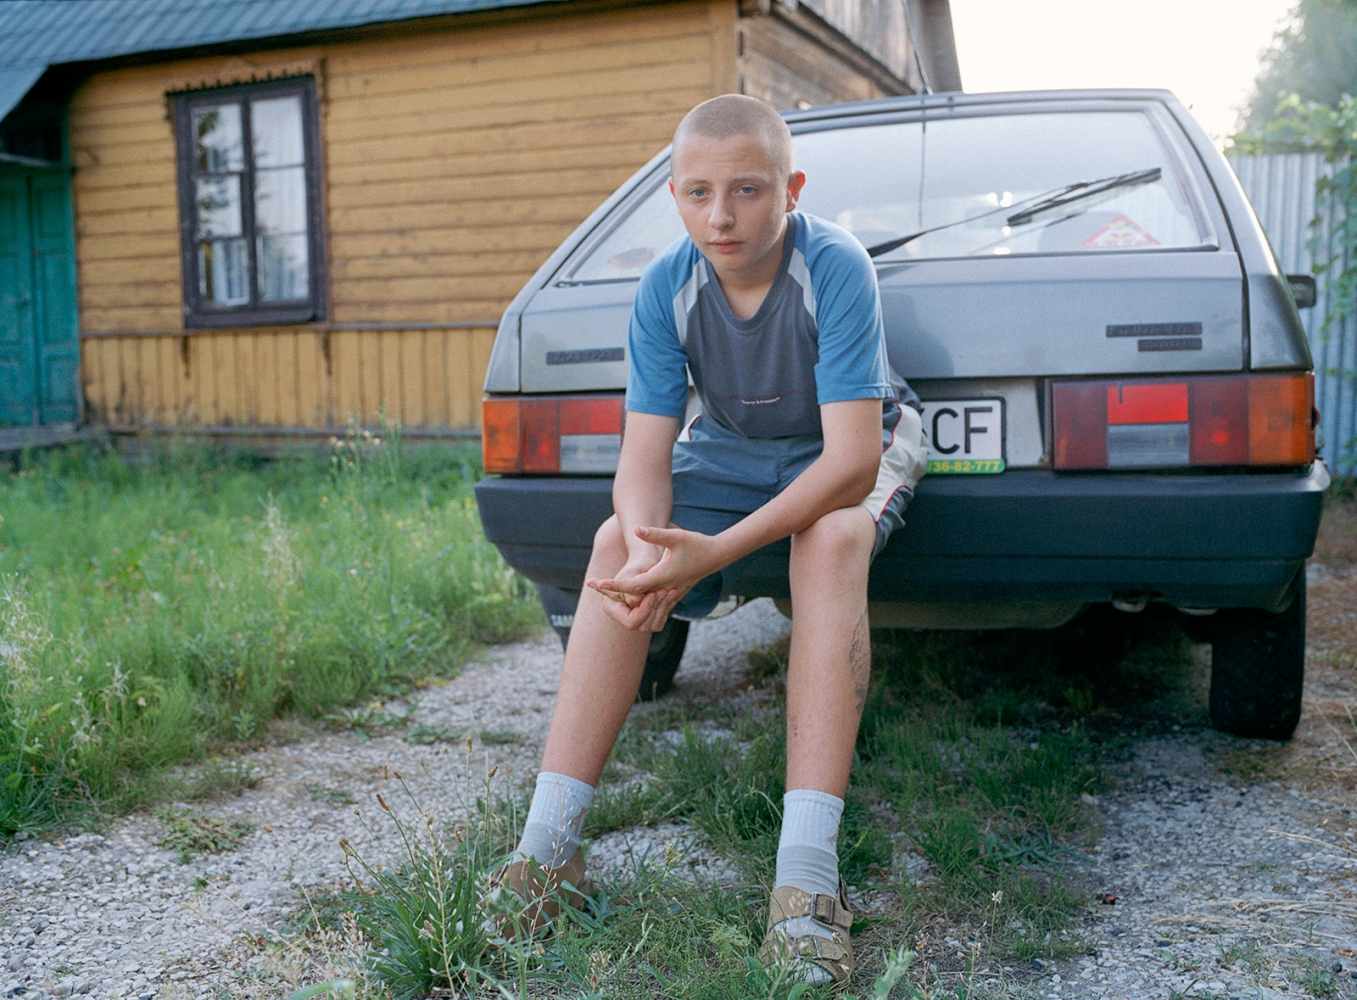 Art and Documentary Photography - Loading 5_boy_car.jpg